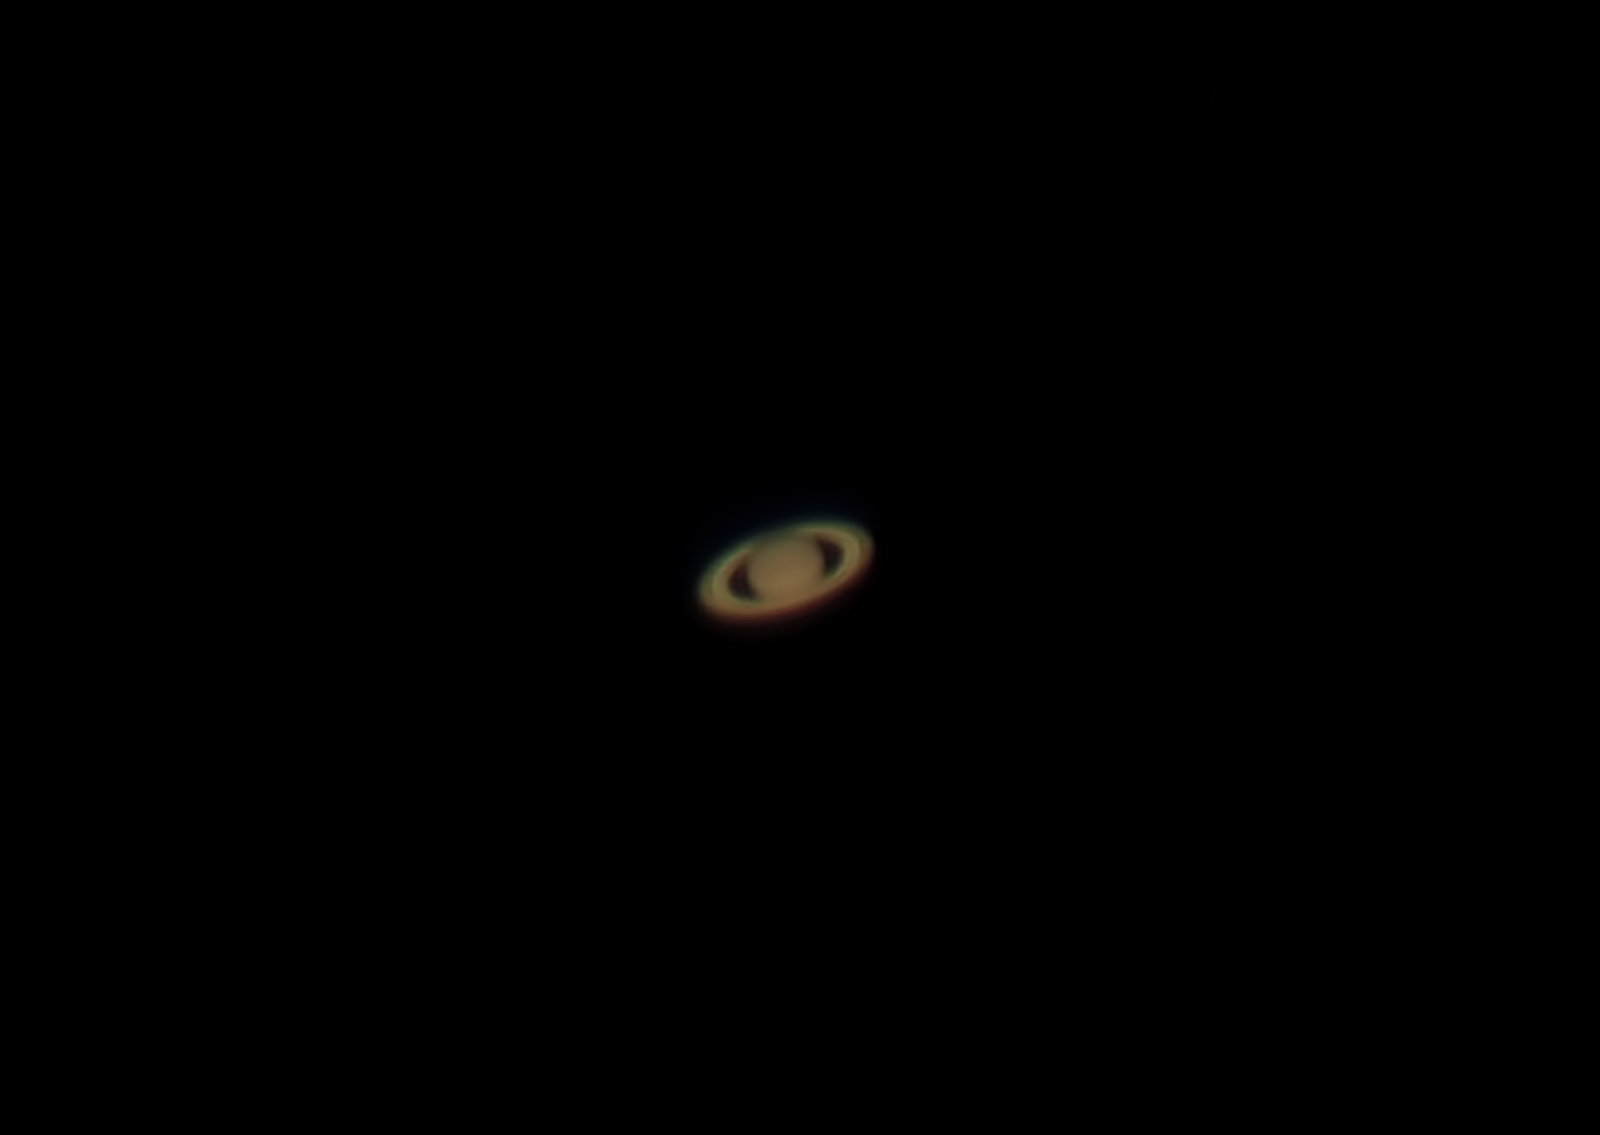 575eb4d031004-saturn7-6-1610ps.png